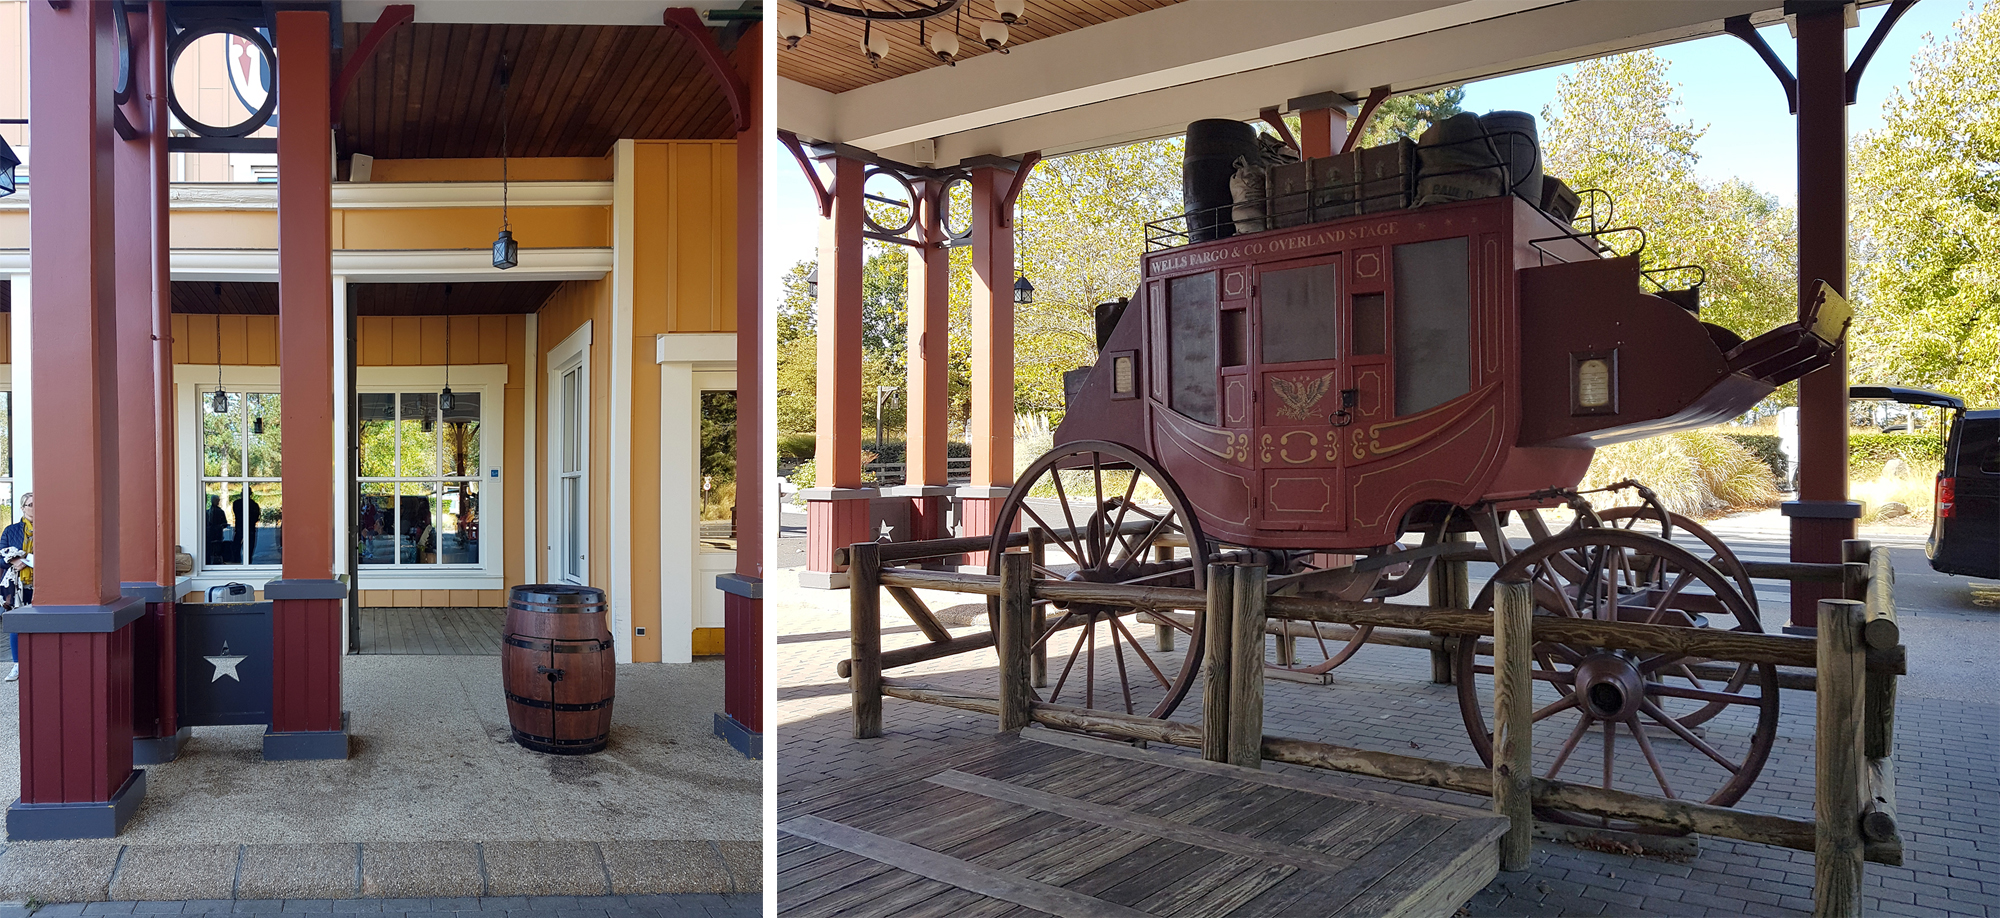 Hotel Cheyenne cowboy themed hotel, with carriage outside. | Staying at Hotel Cheyenne in Disneyland Paris